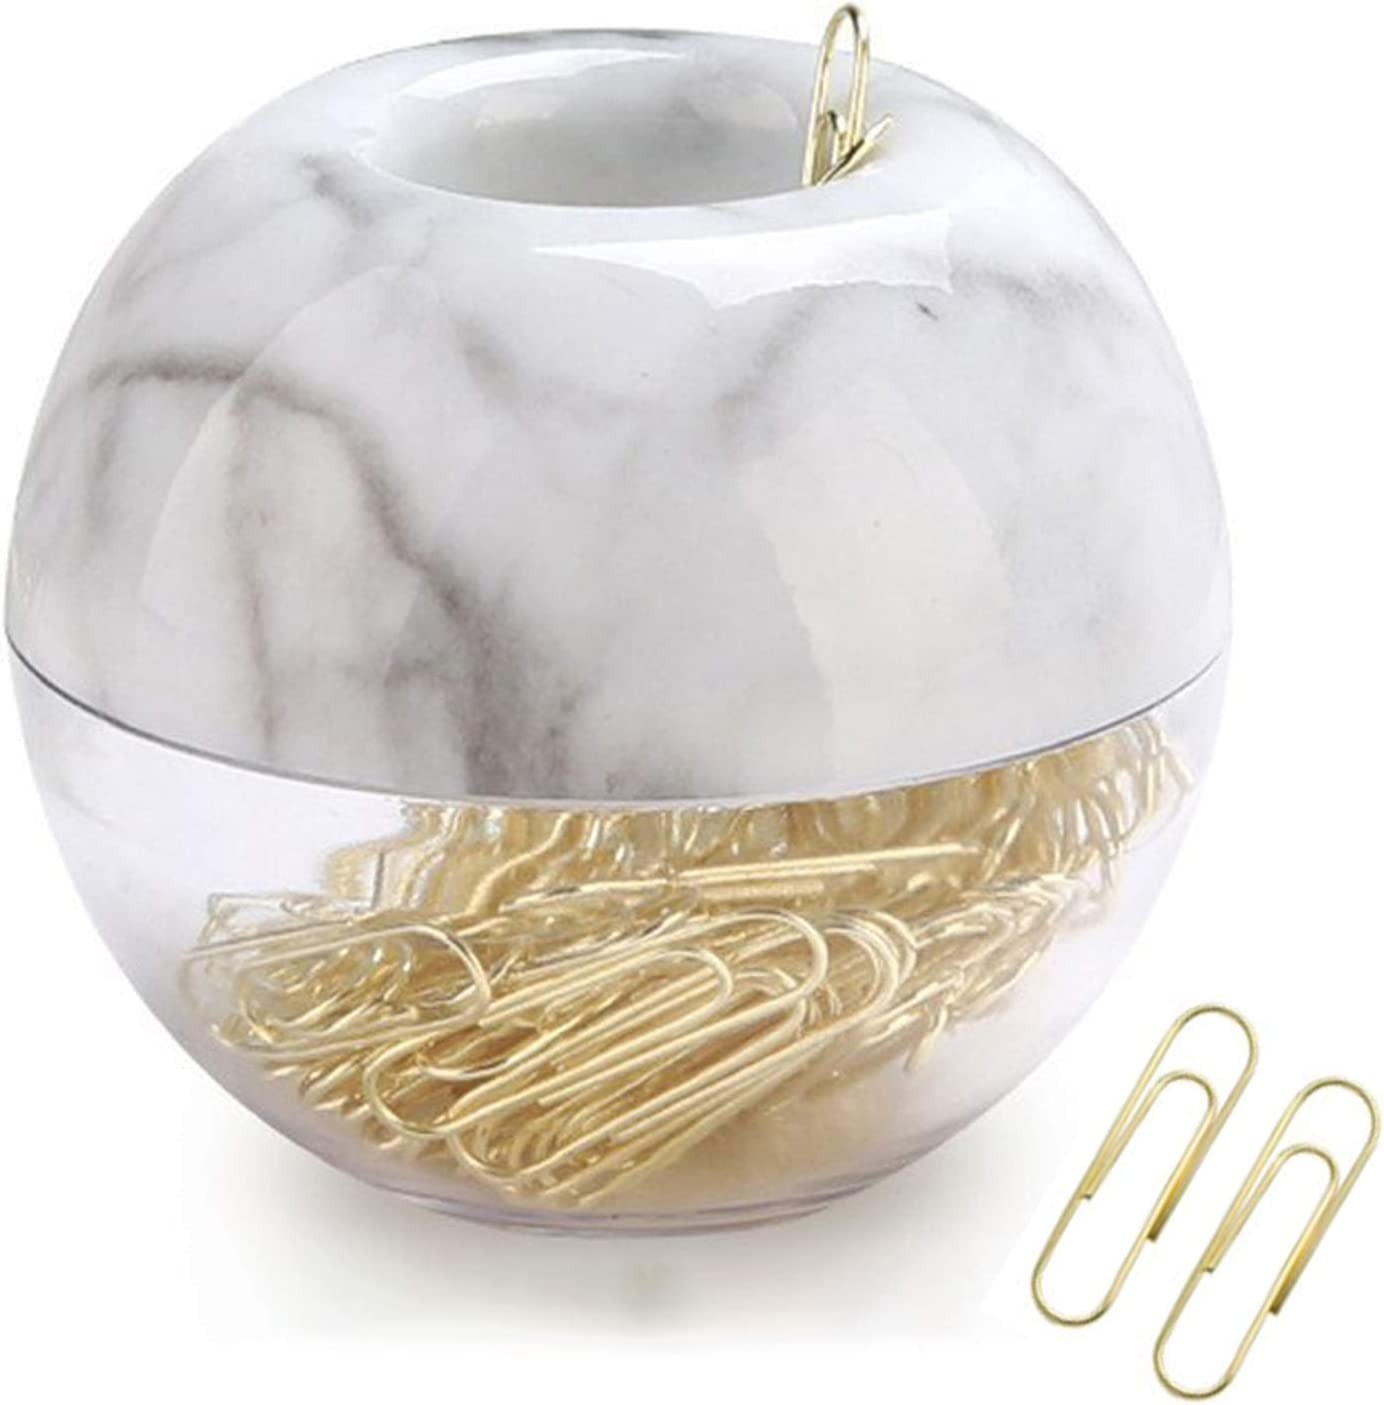 "Magnetic Paper Clip Holder,Marble White Holder with Gold Paper Clips 100pcs 28mm(1.1"") Cute Office Supplies for Desk Organizer"